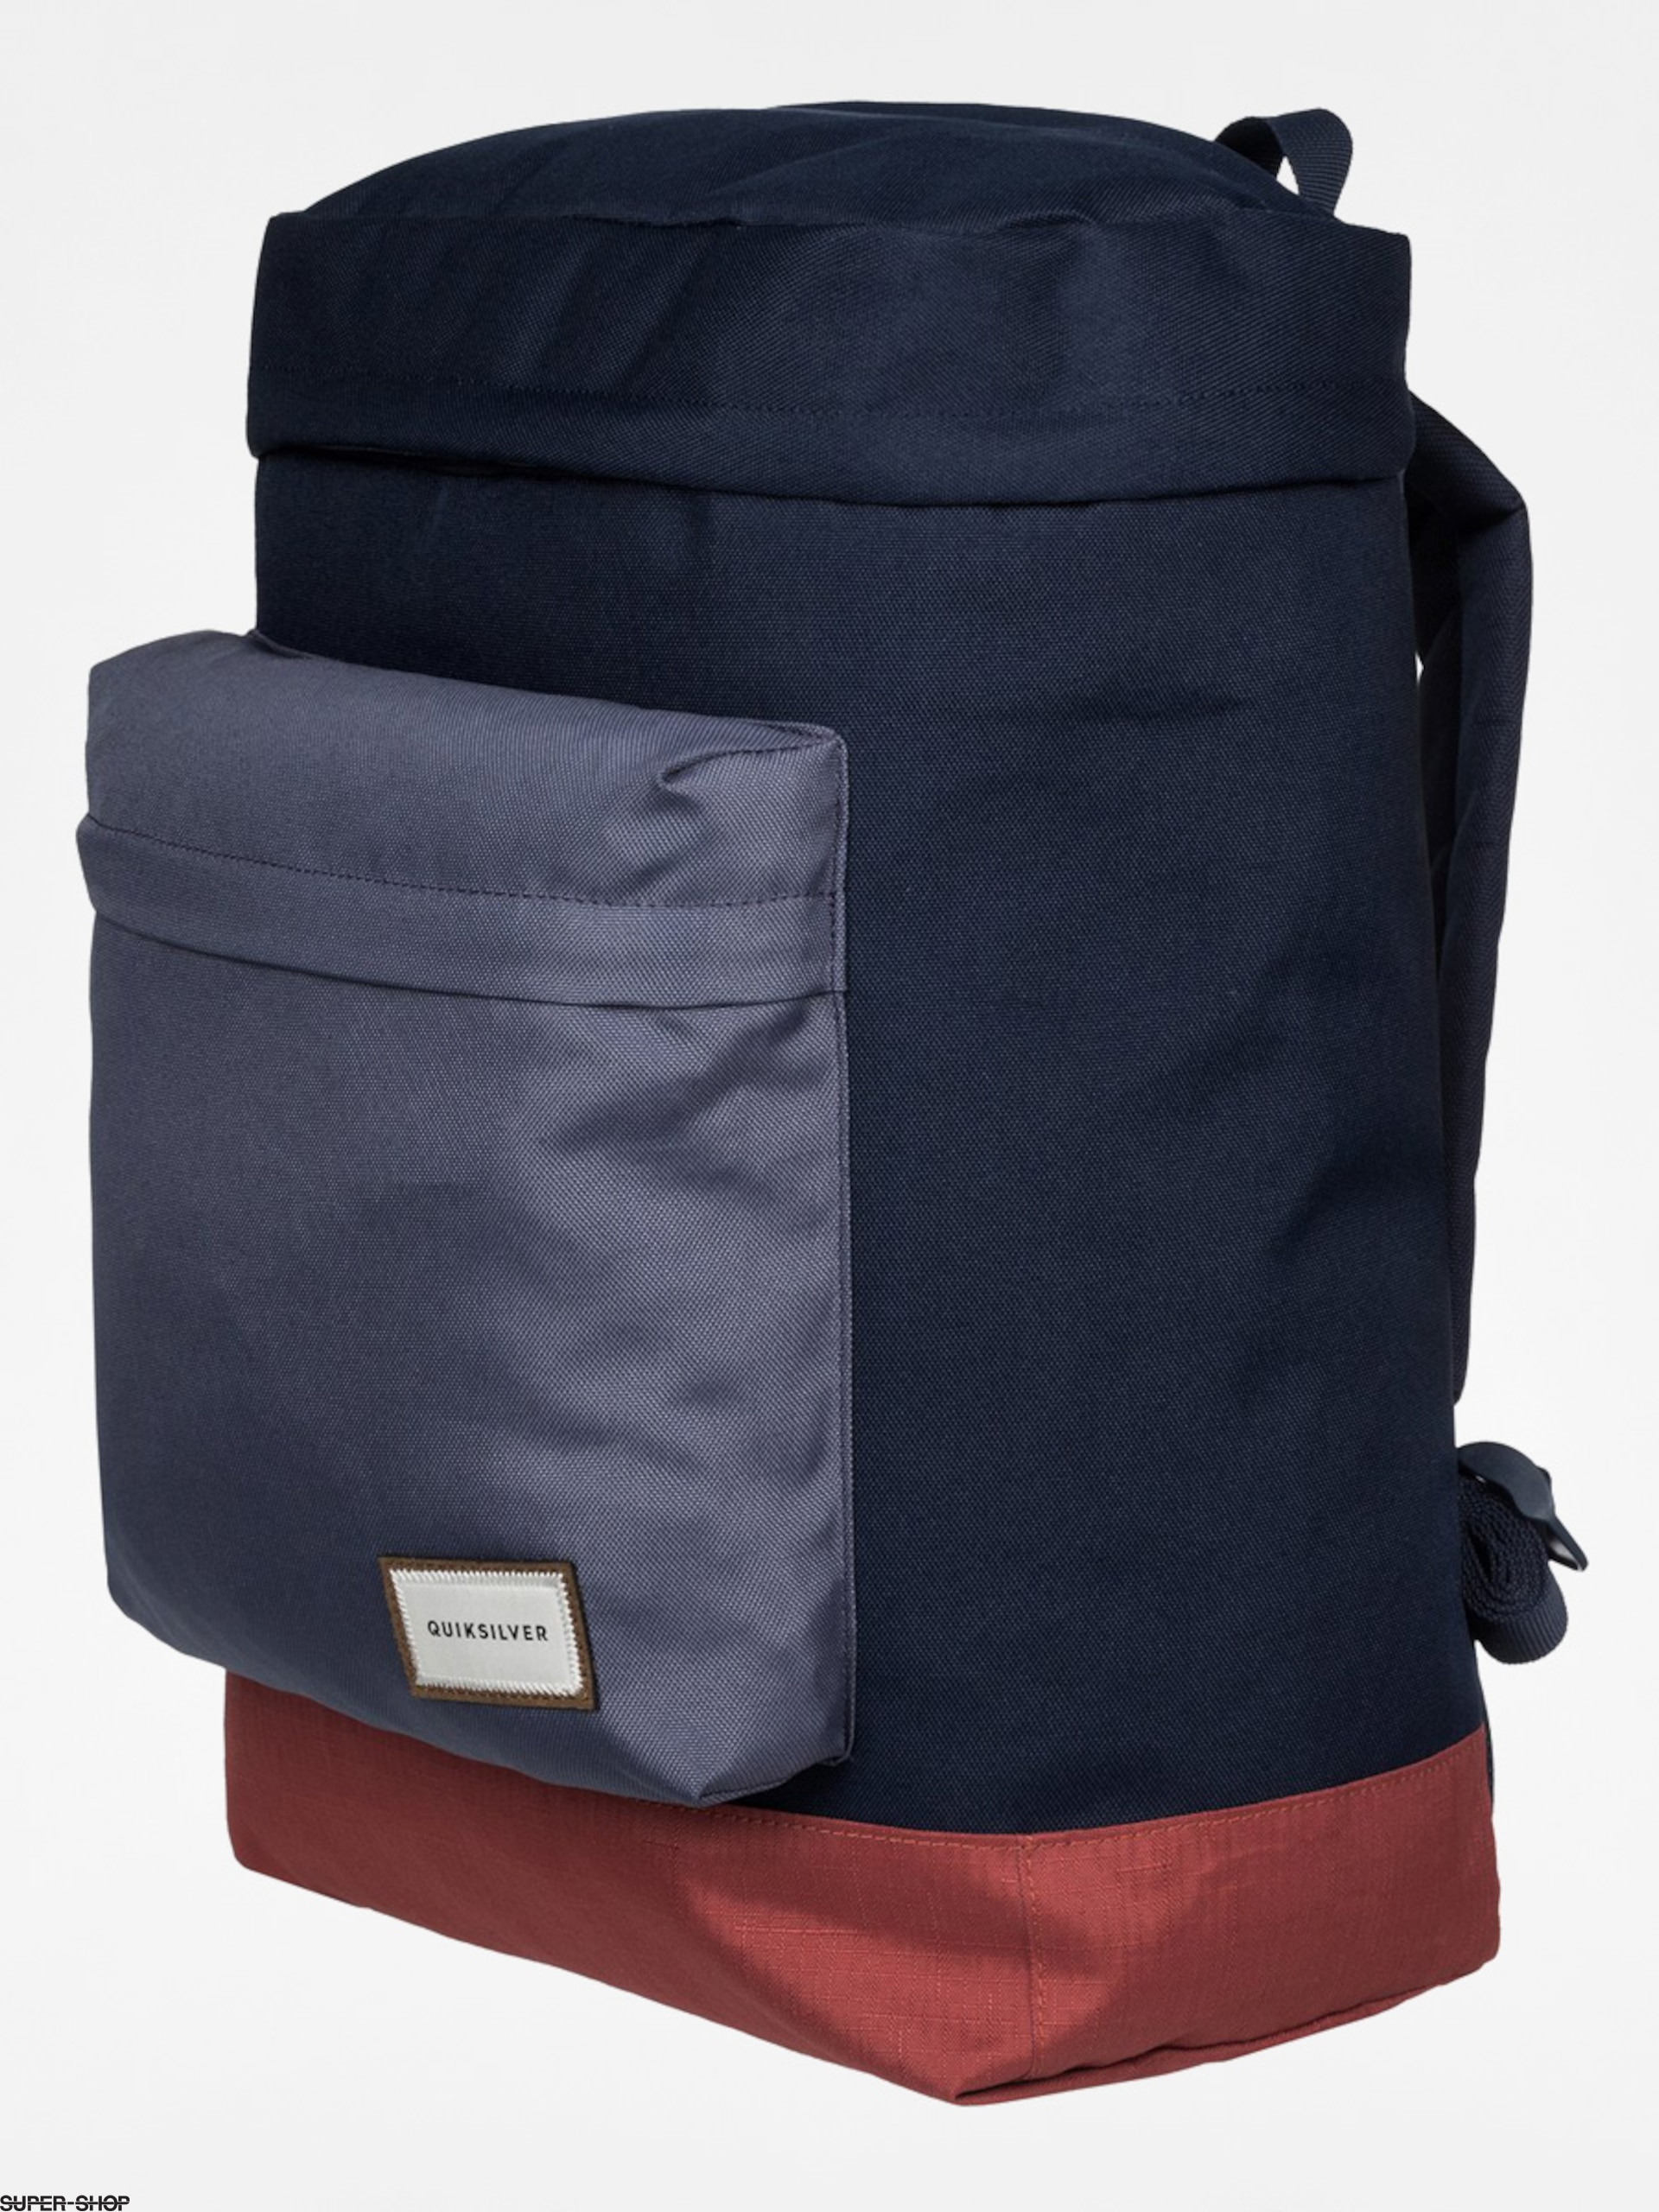 Quiksilver Backpack Rucksack Edition (navy/brick)